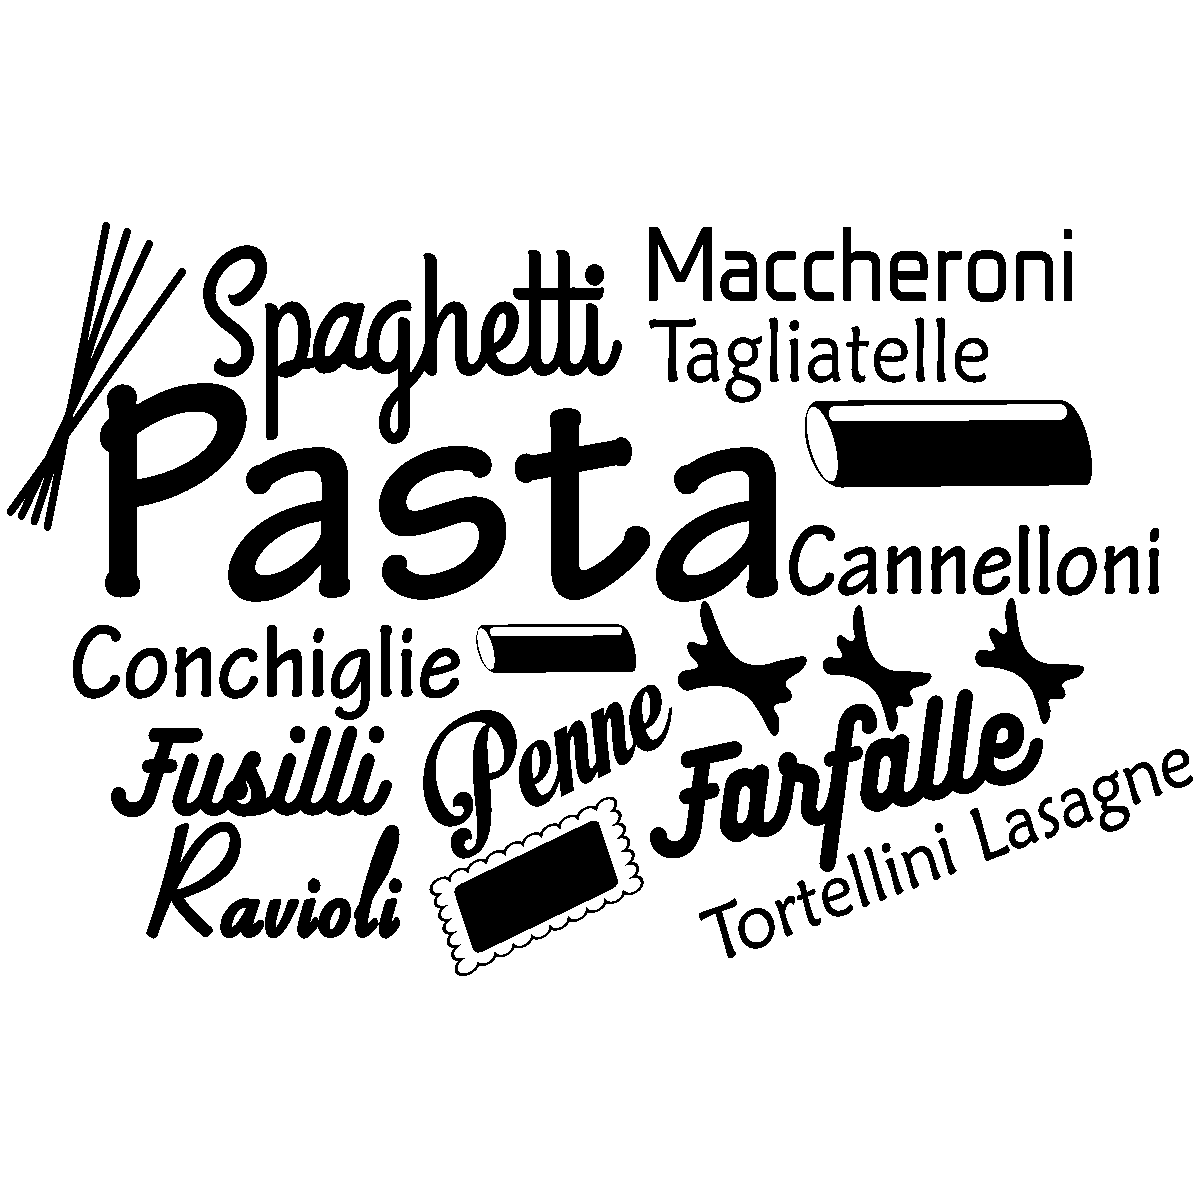 sticker citation cuisine spaghetti maccheroni pasta stickers cuisine nourriture et fruits. Black Bedroom Furniture Sets. Home Design Ideas